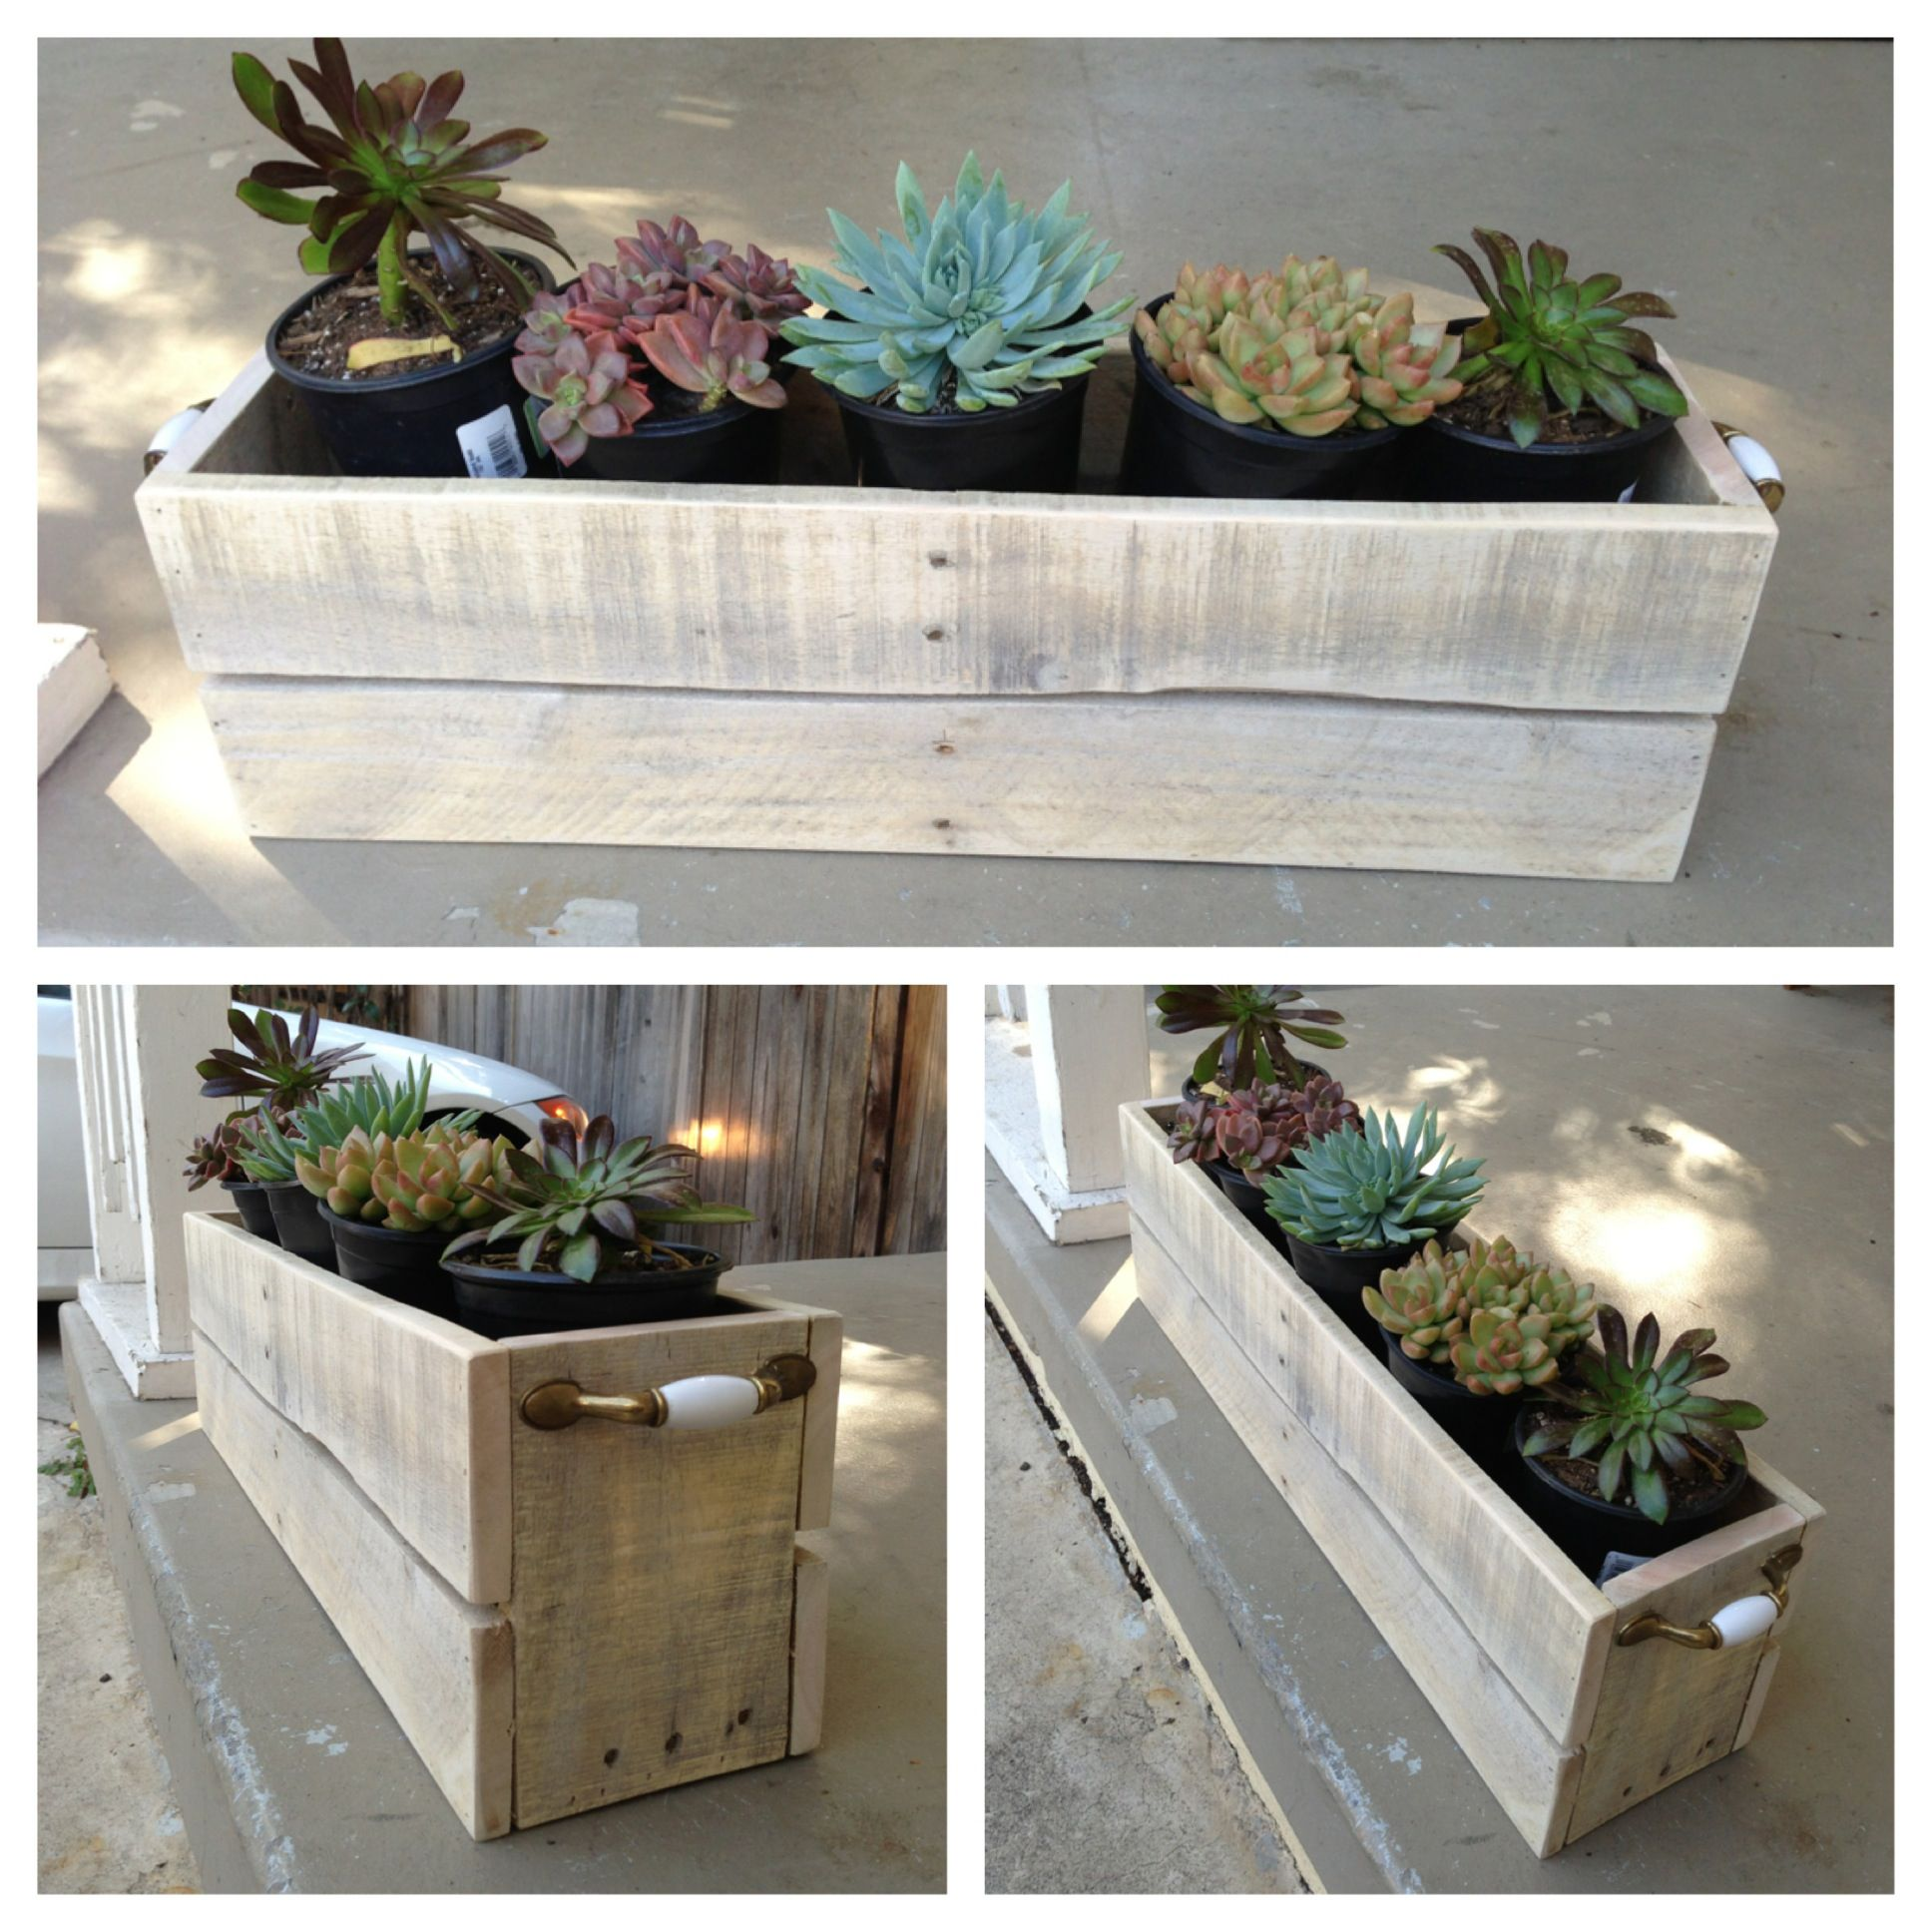 Diy Deck Flower Boxes Planter 39s Box Made From Pallet Wood Made By Yours Truly